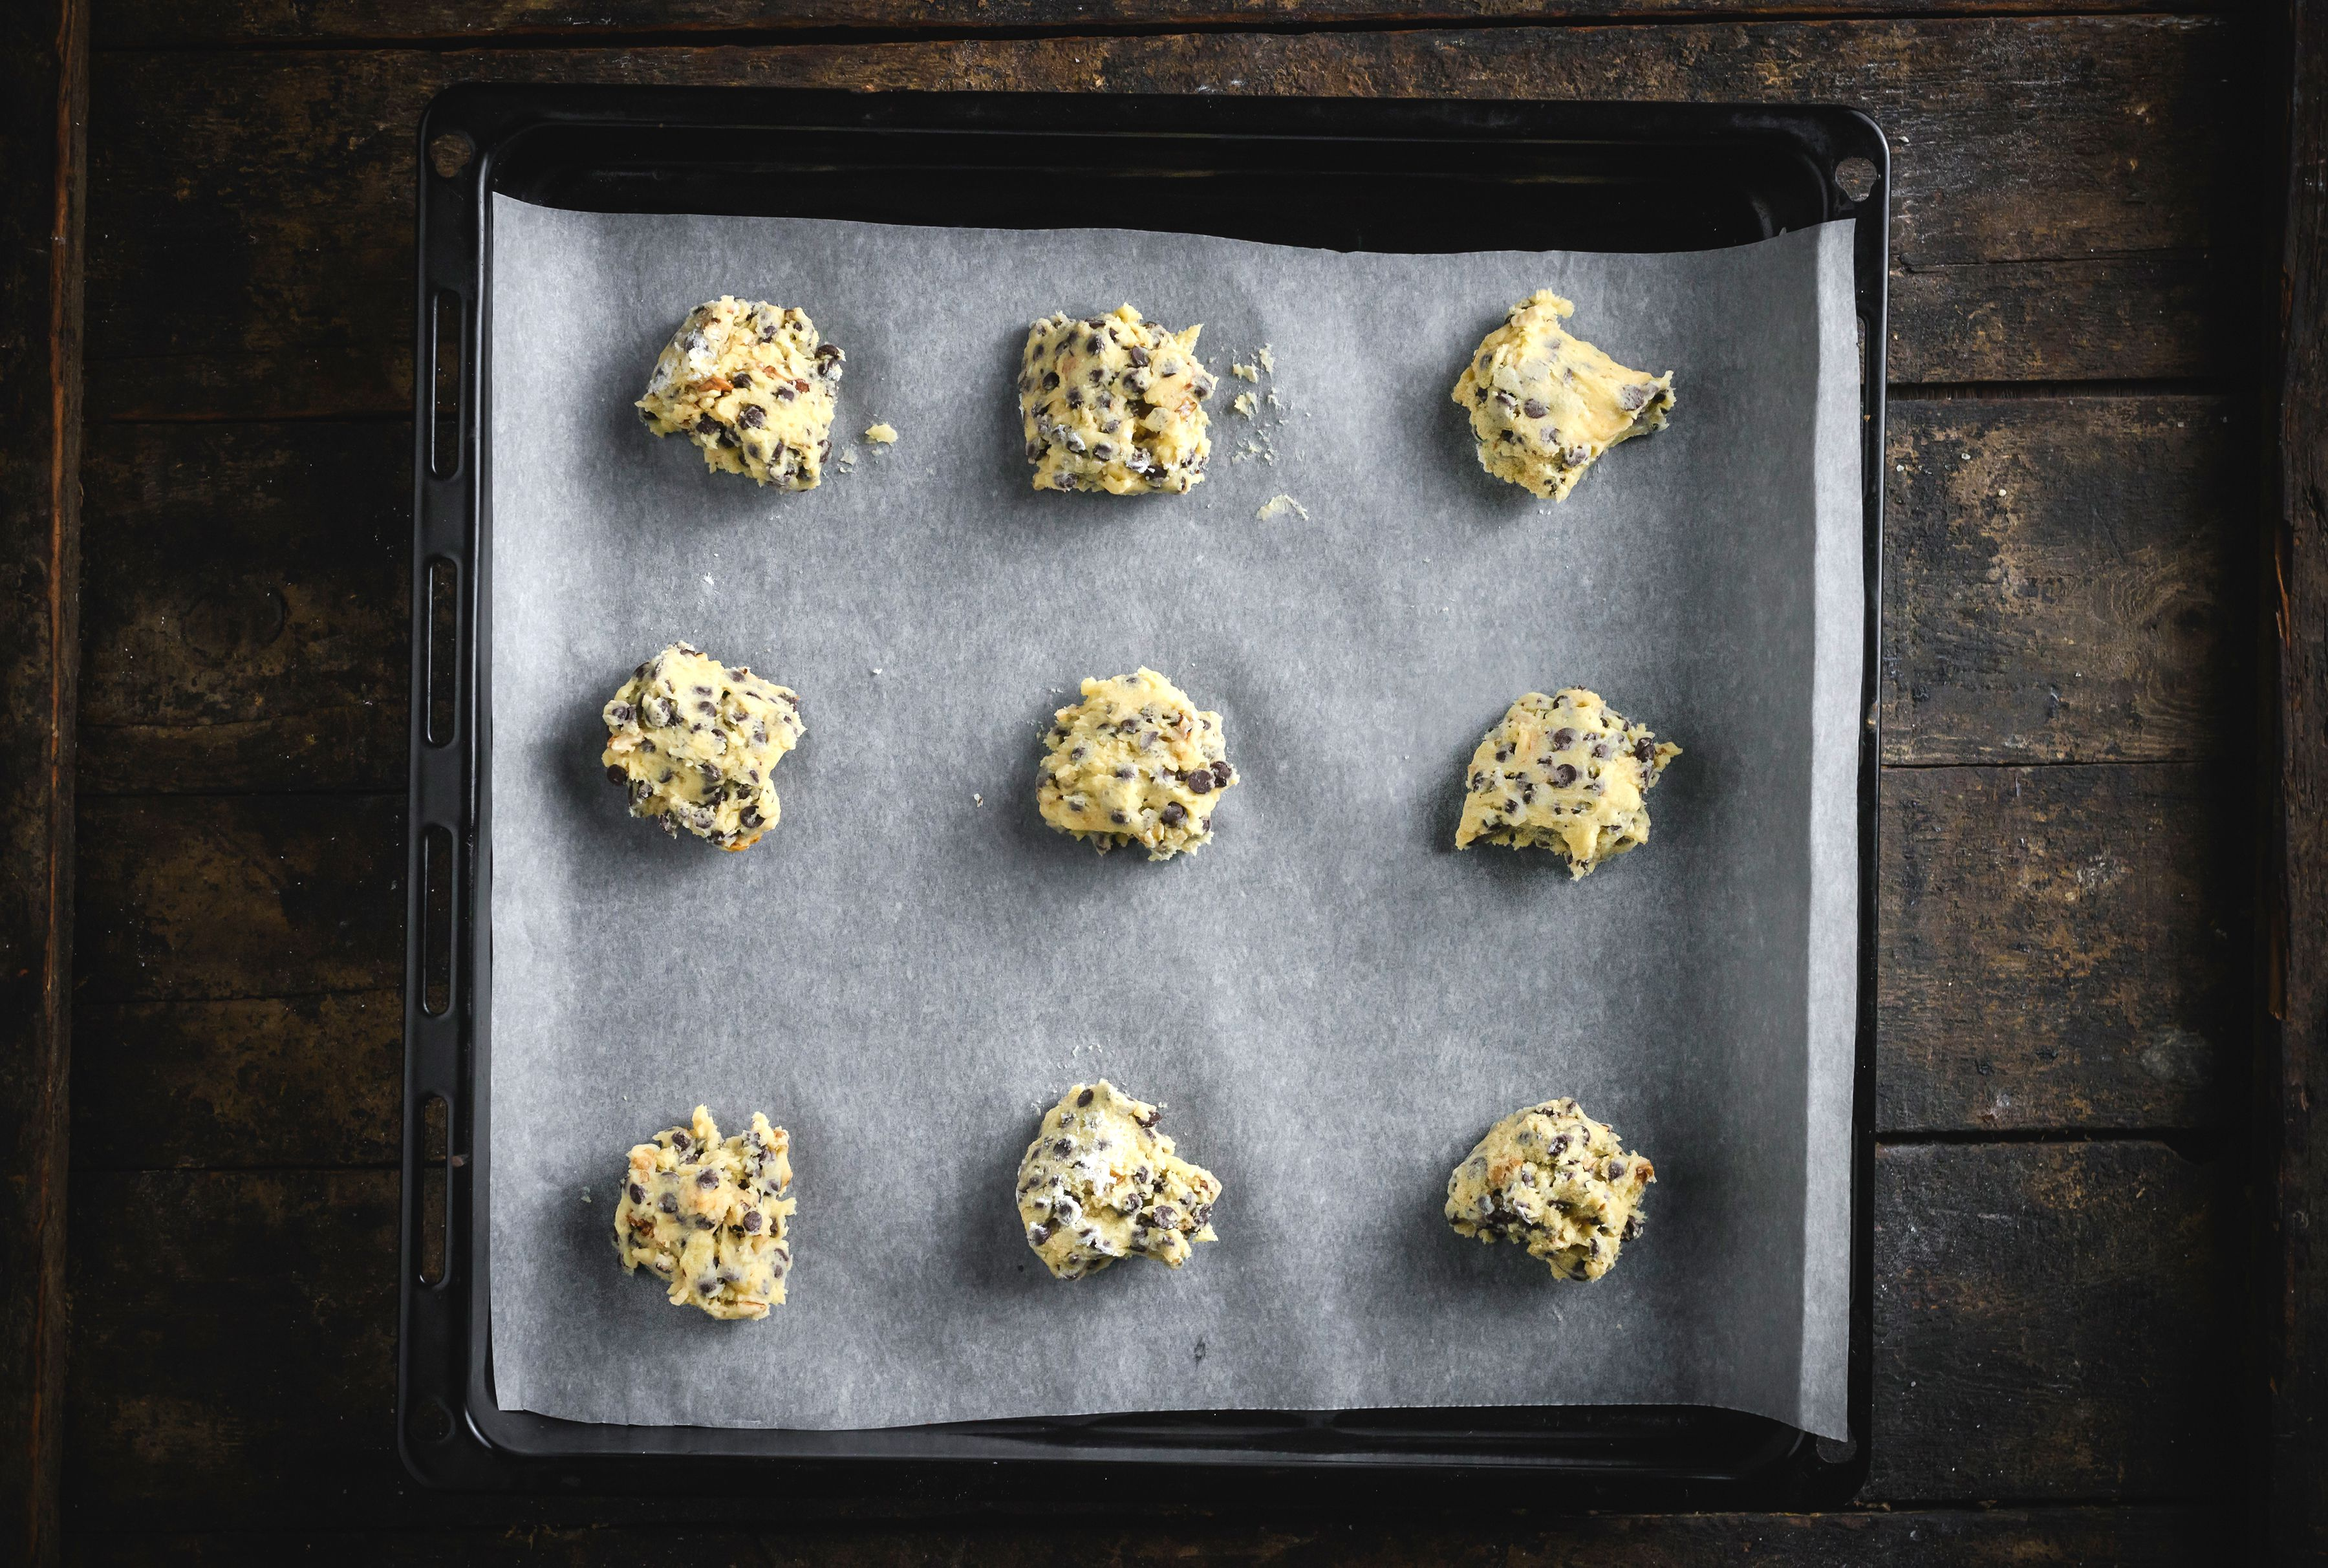 Drop cookies onto tray